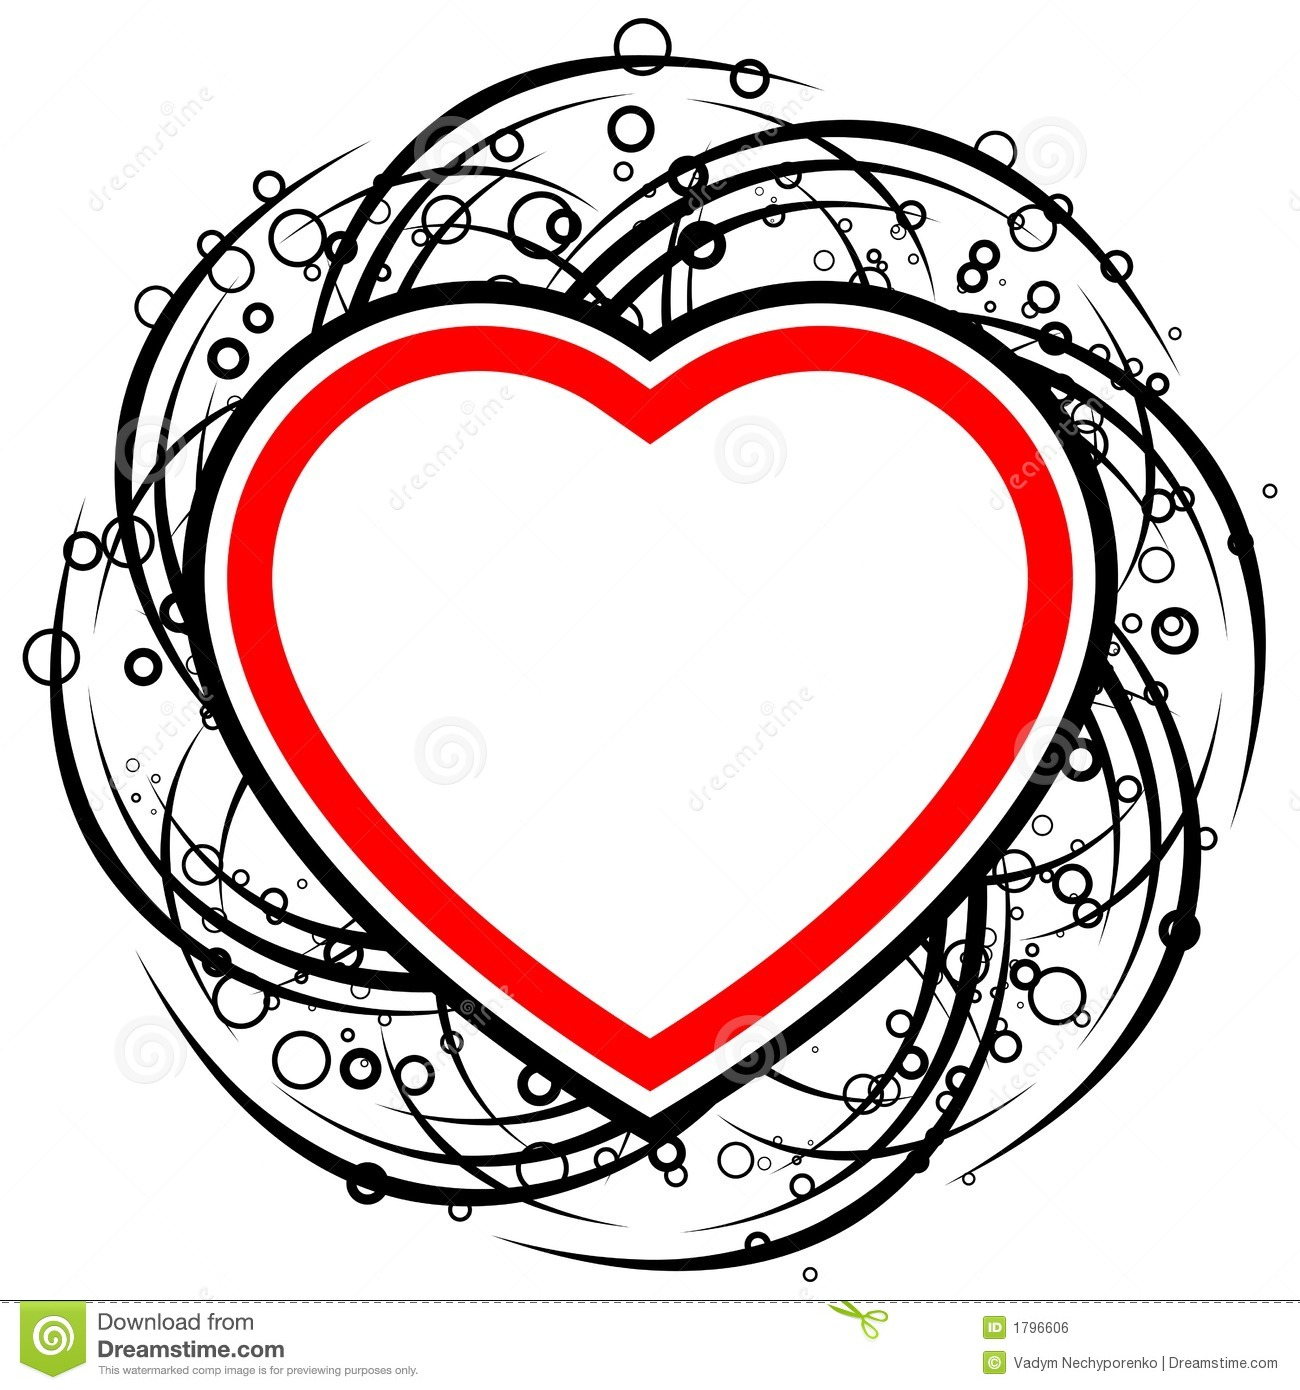 Abstract Valentine Card With Scrolls Circles And Heart Shape – Heart Shaped Valentine Cards